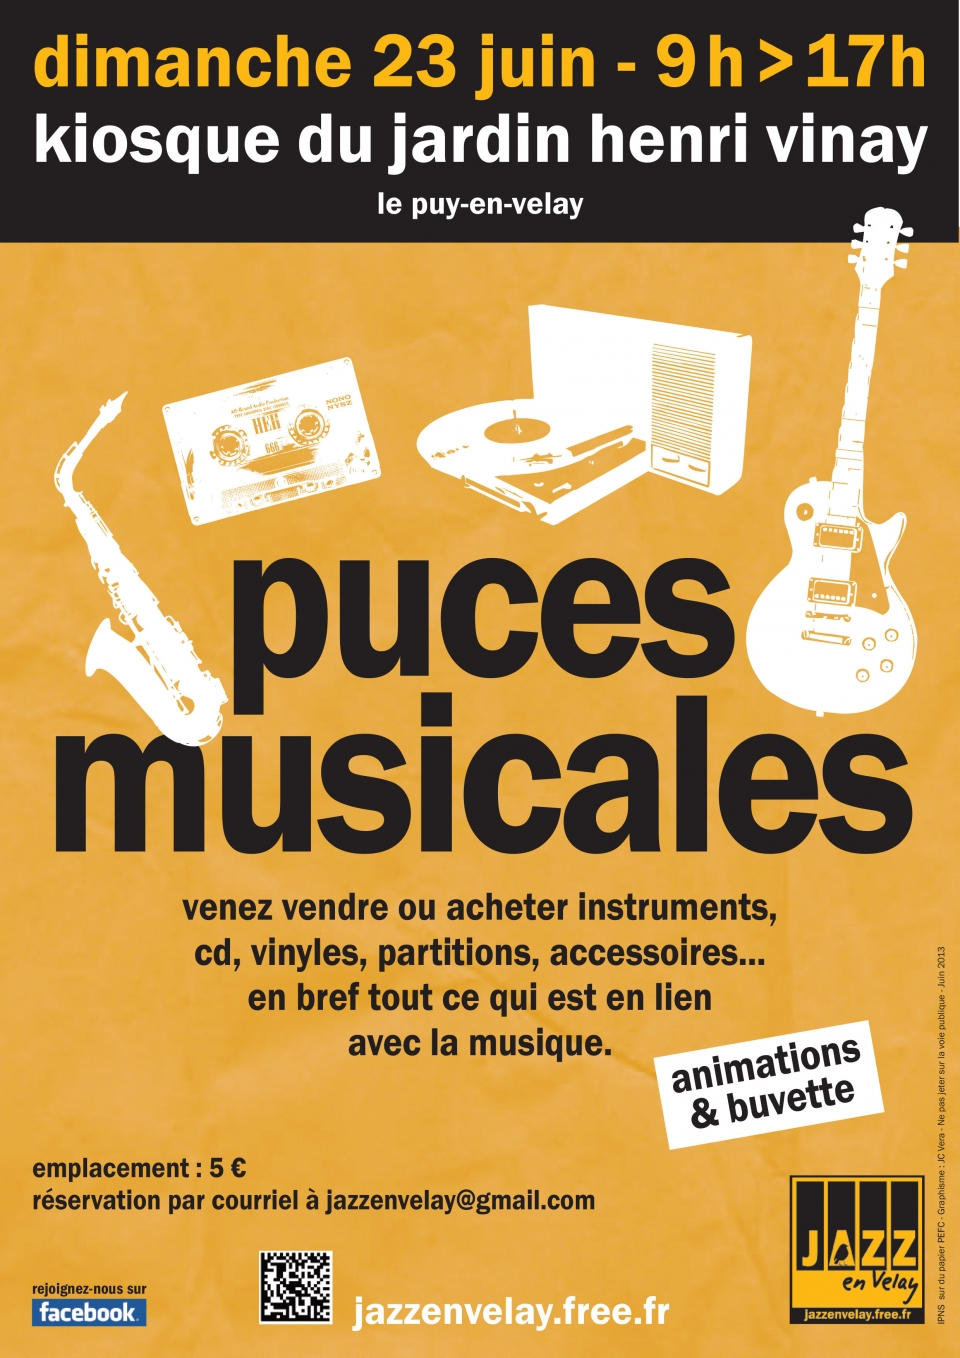 Puces musicales strada for Jardin henri vinay